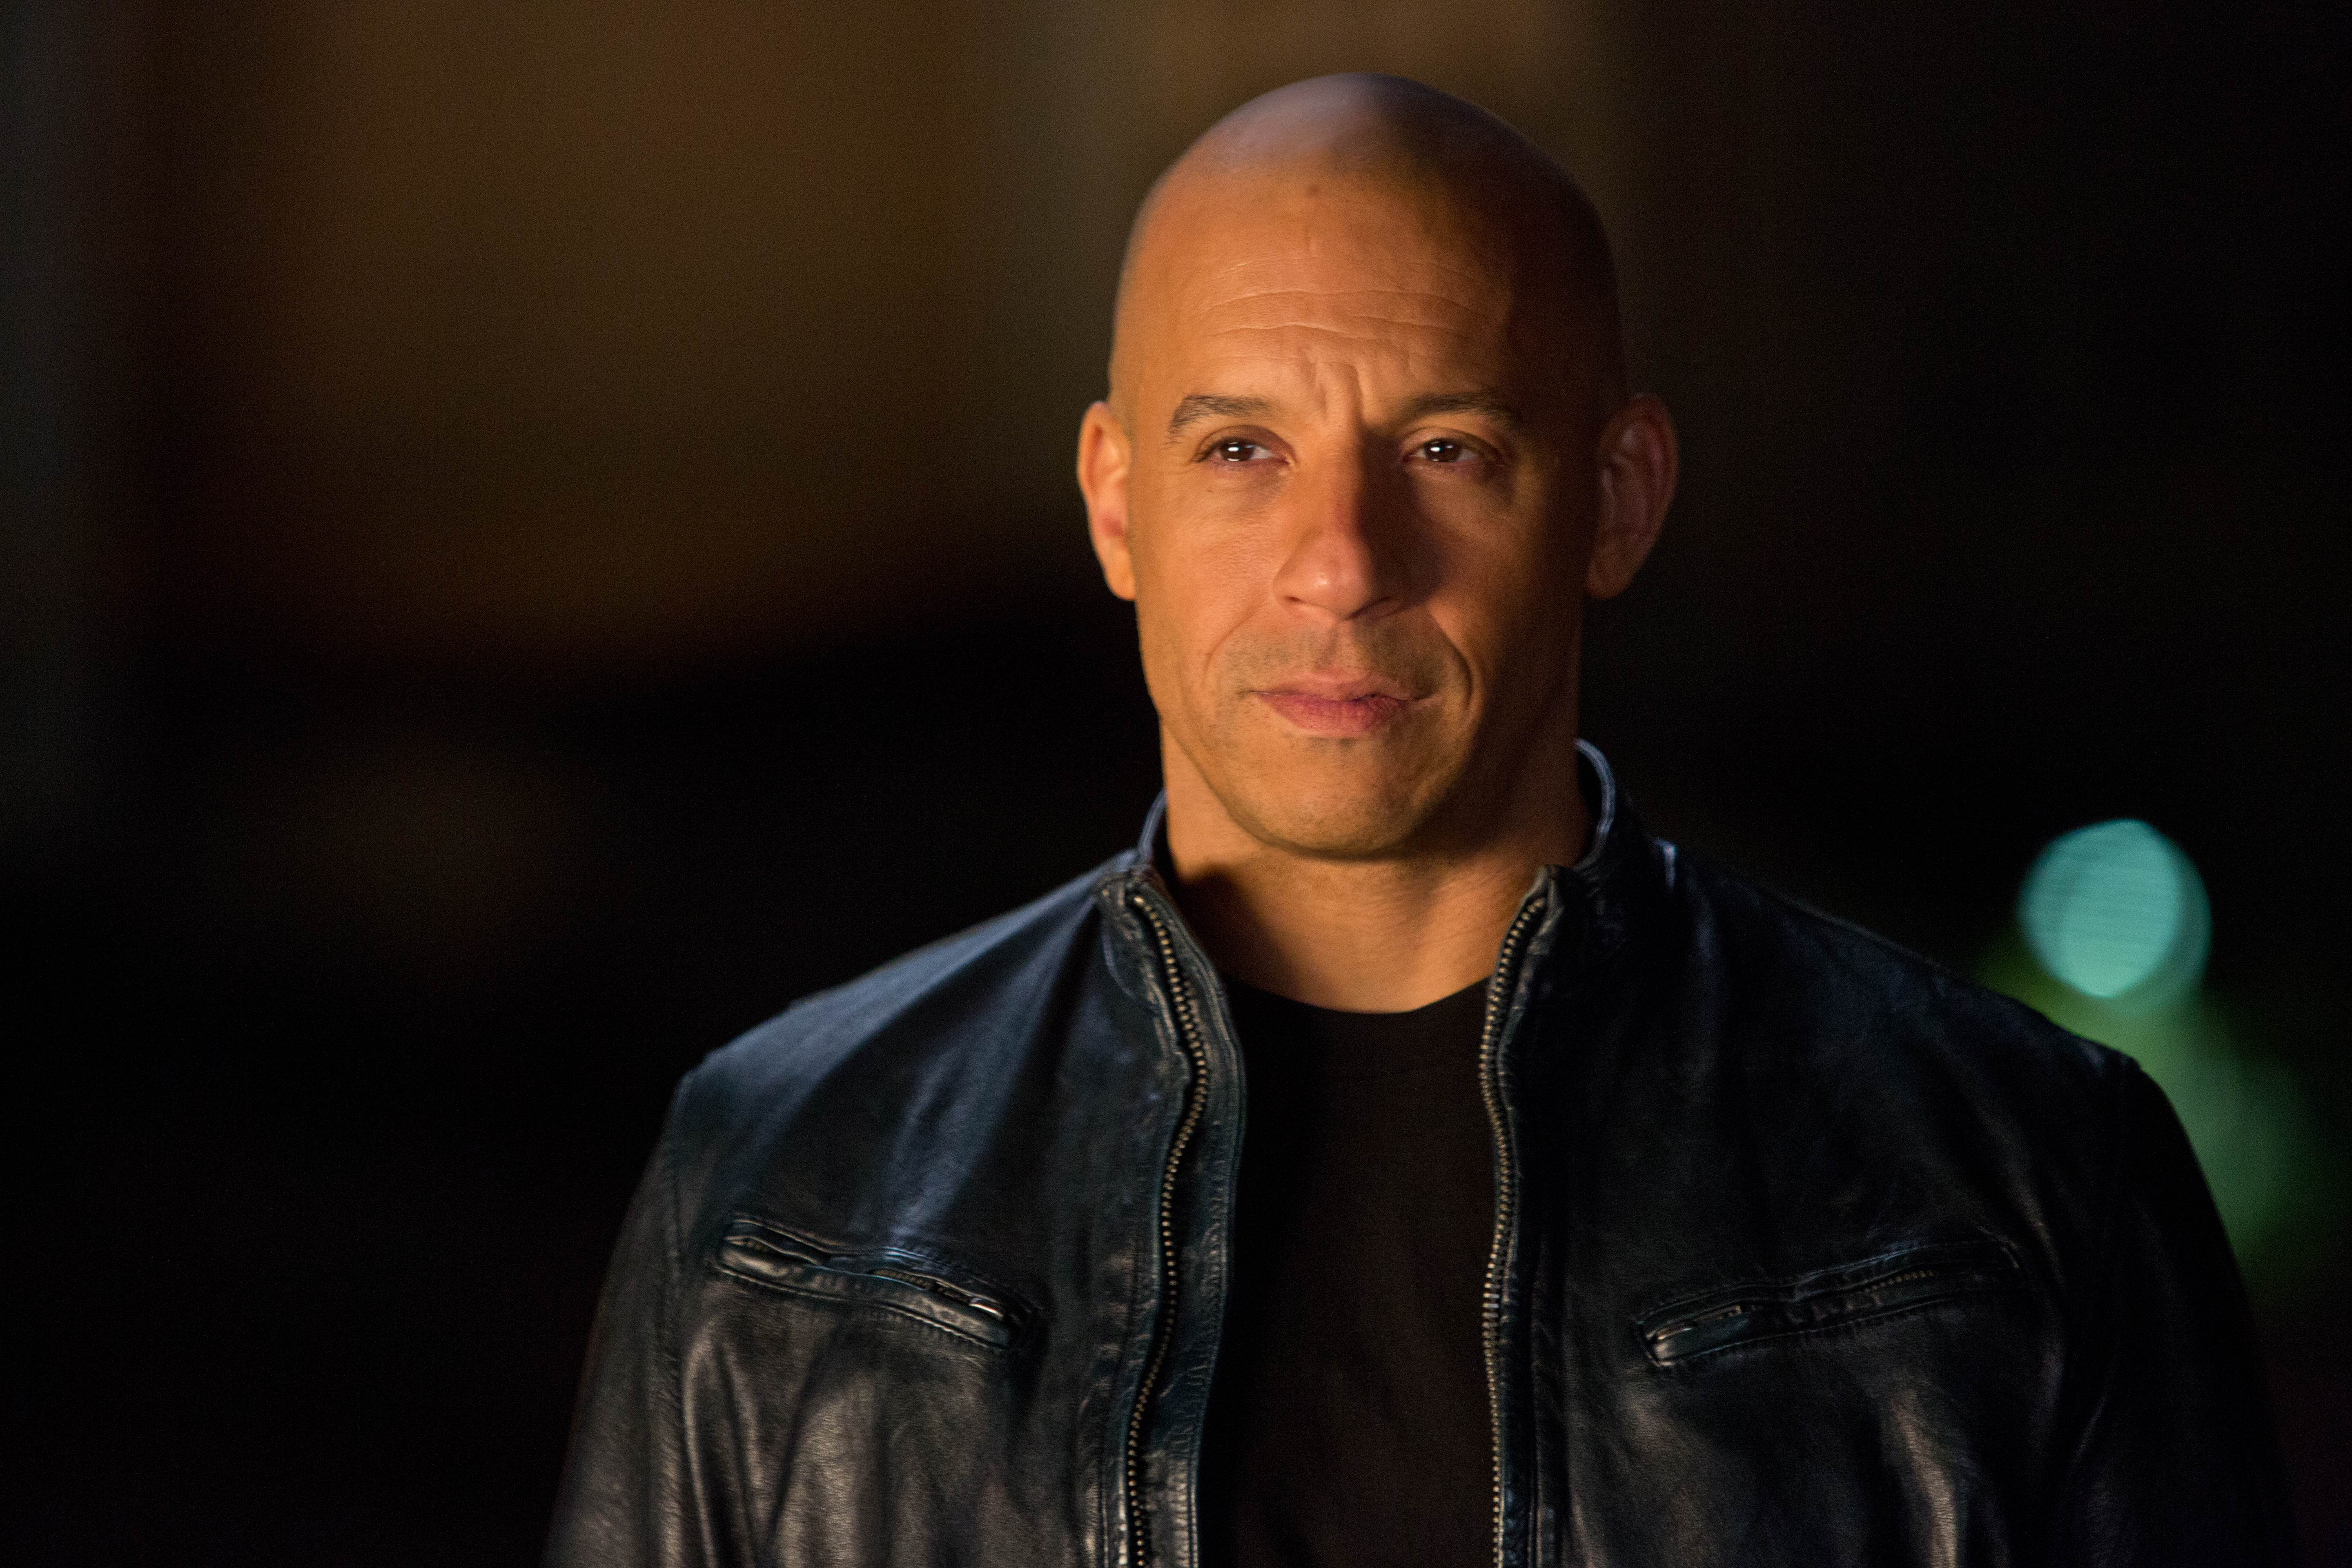 Fast Furious 8 Full Movie >> Vin Diesel Wallpapers High Resolution and Quality Download